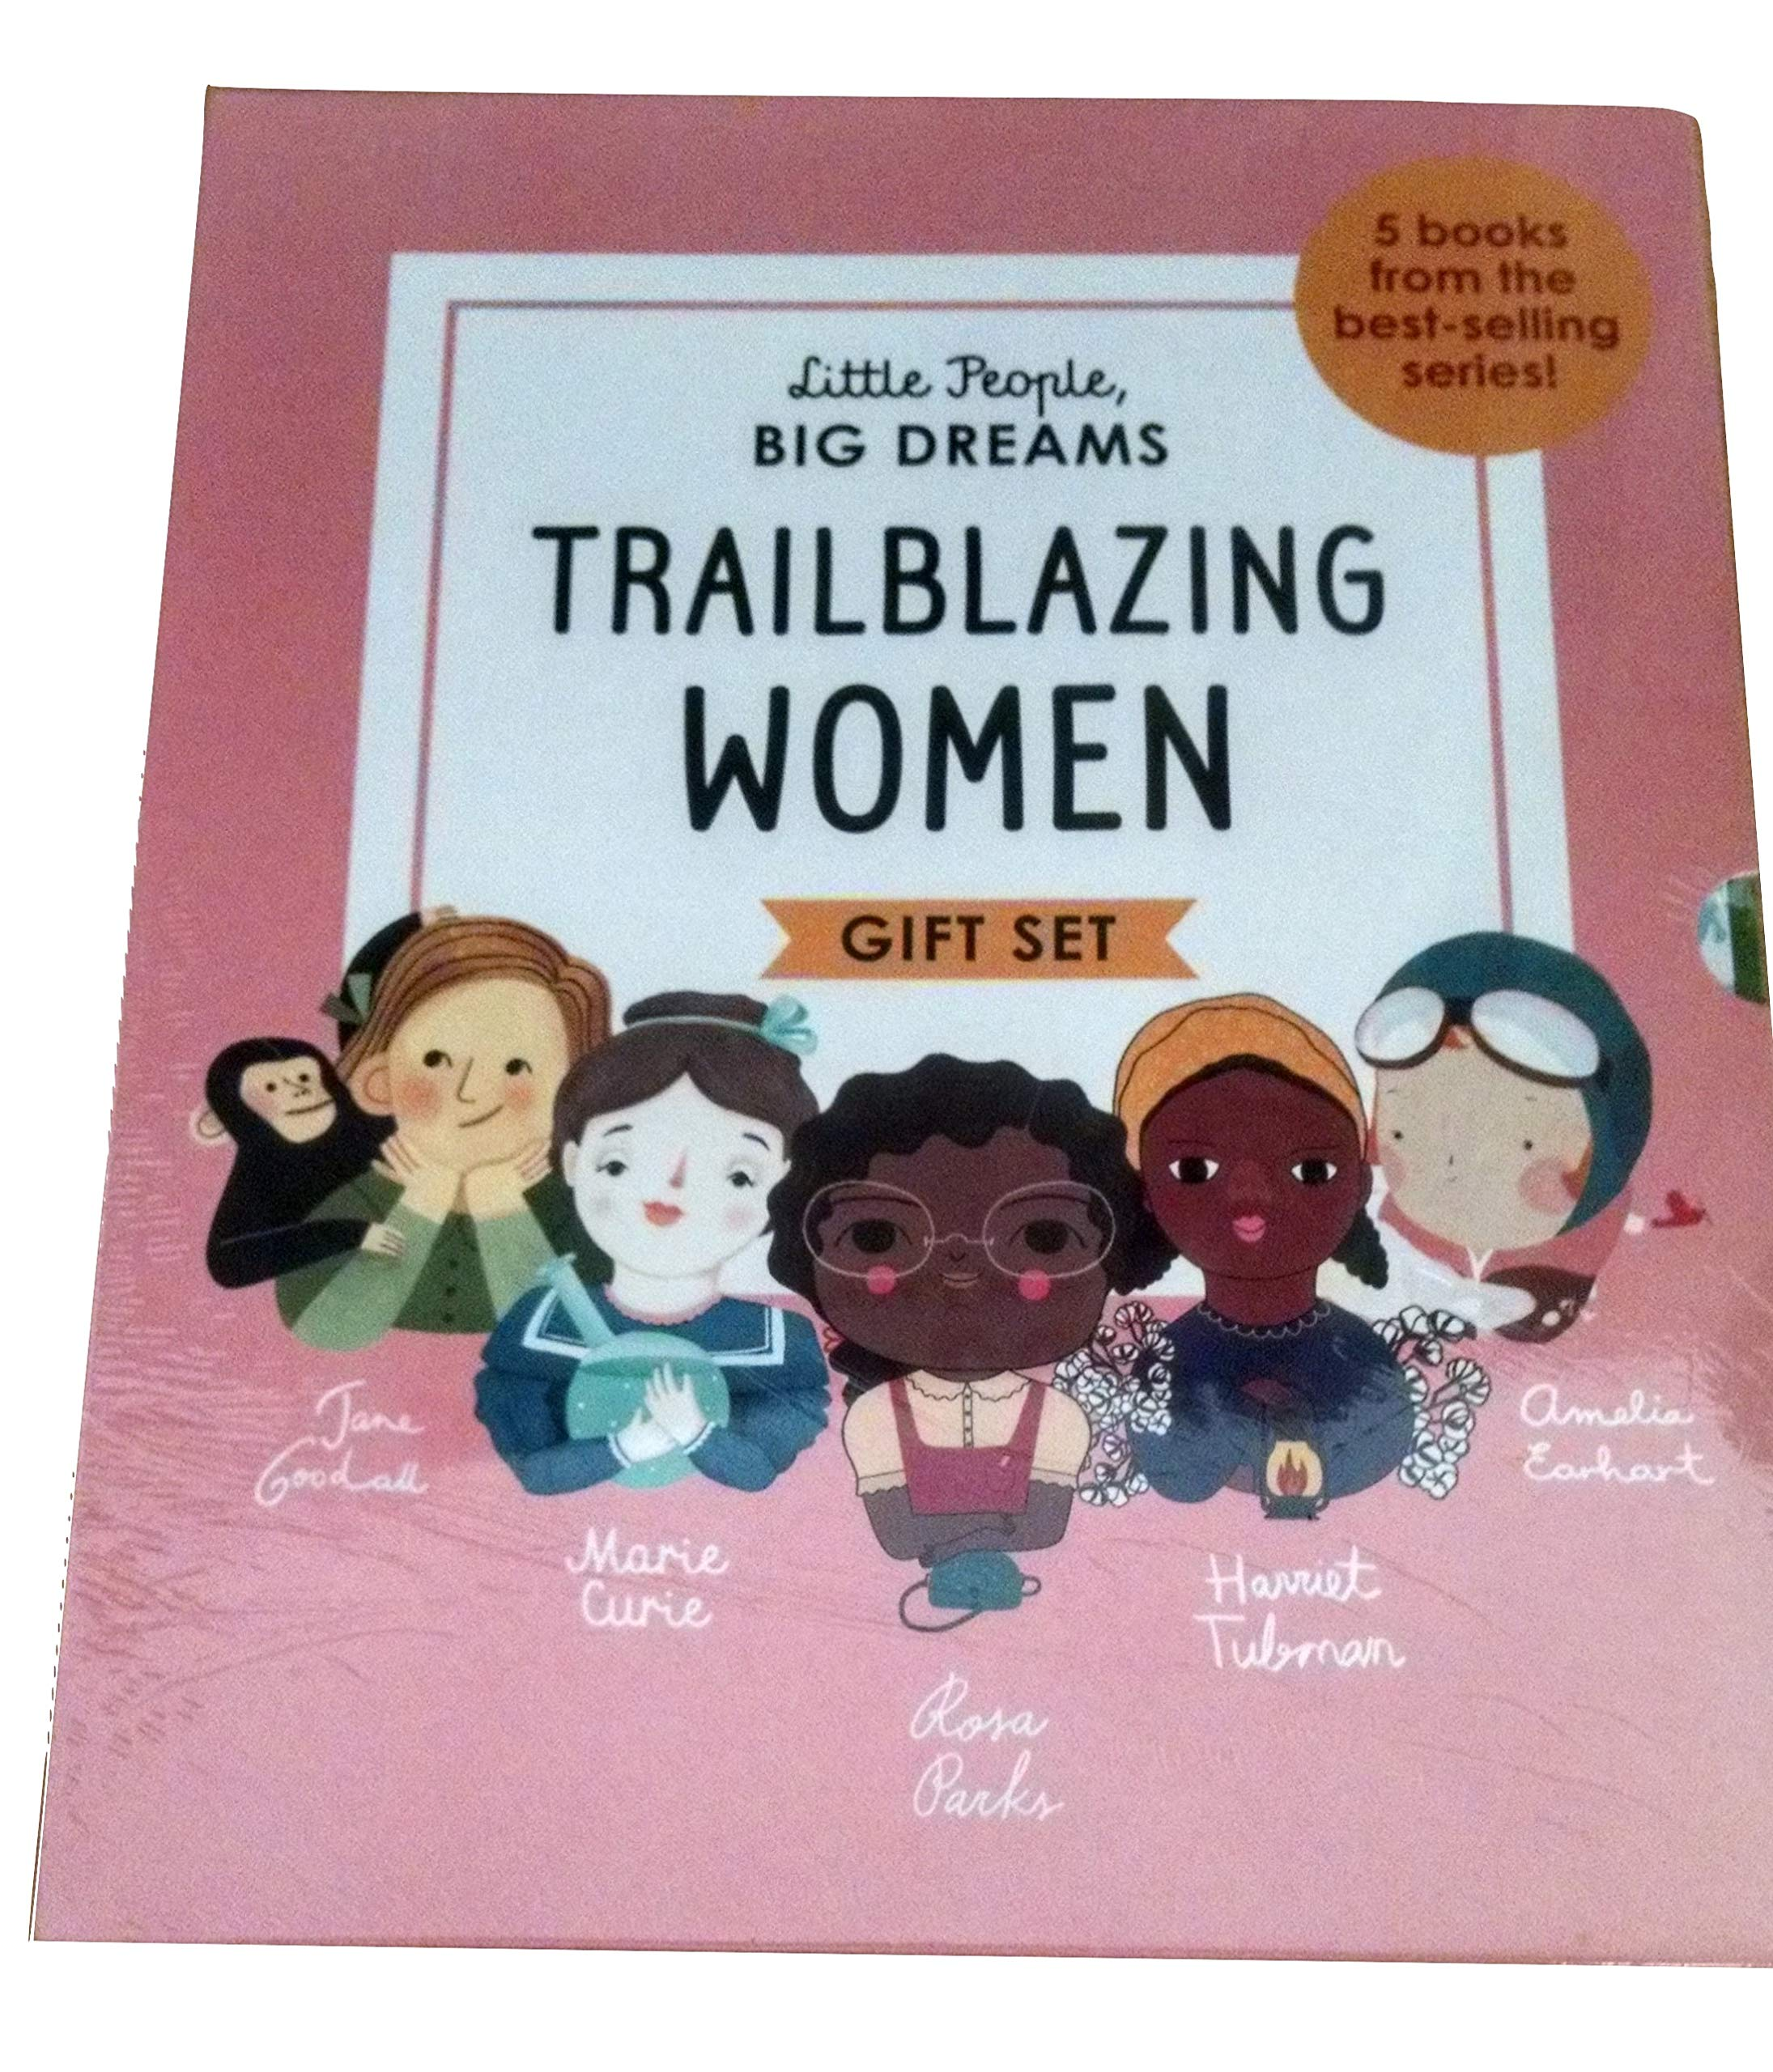 Trailblazing Women Boxed Gift Set: Rosa Parks, Amelia Earhart, Harriet Tubman, Jane Goodall and Marie Curie